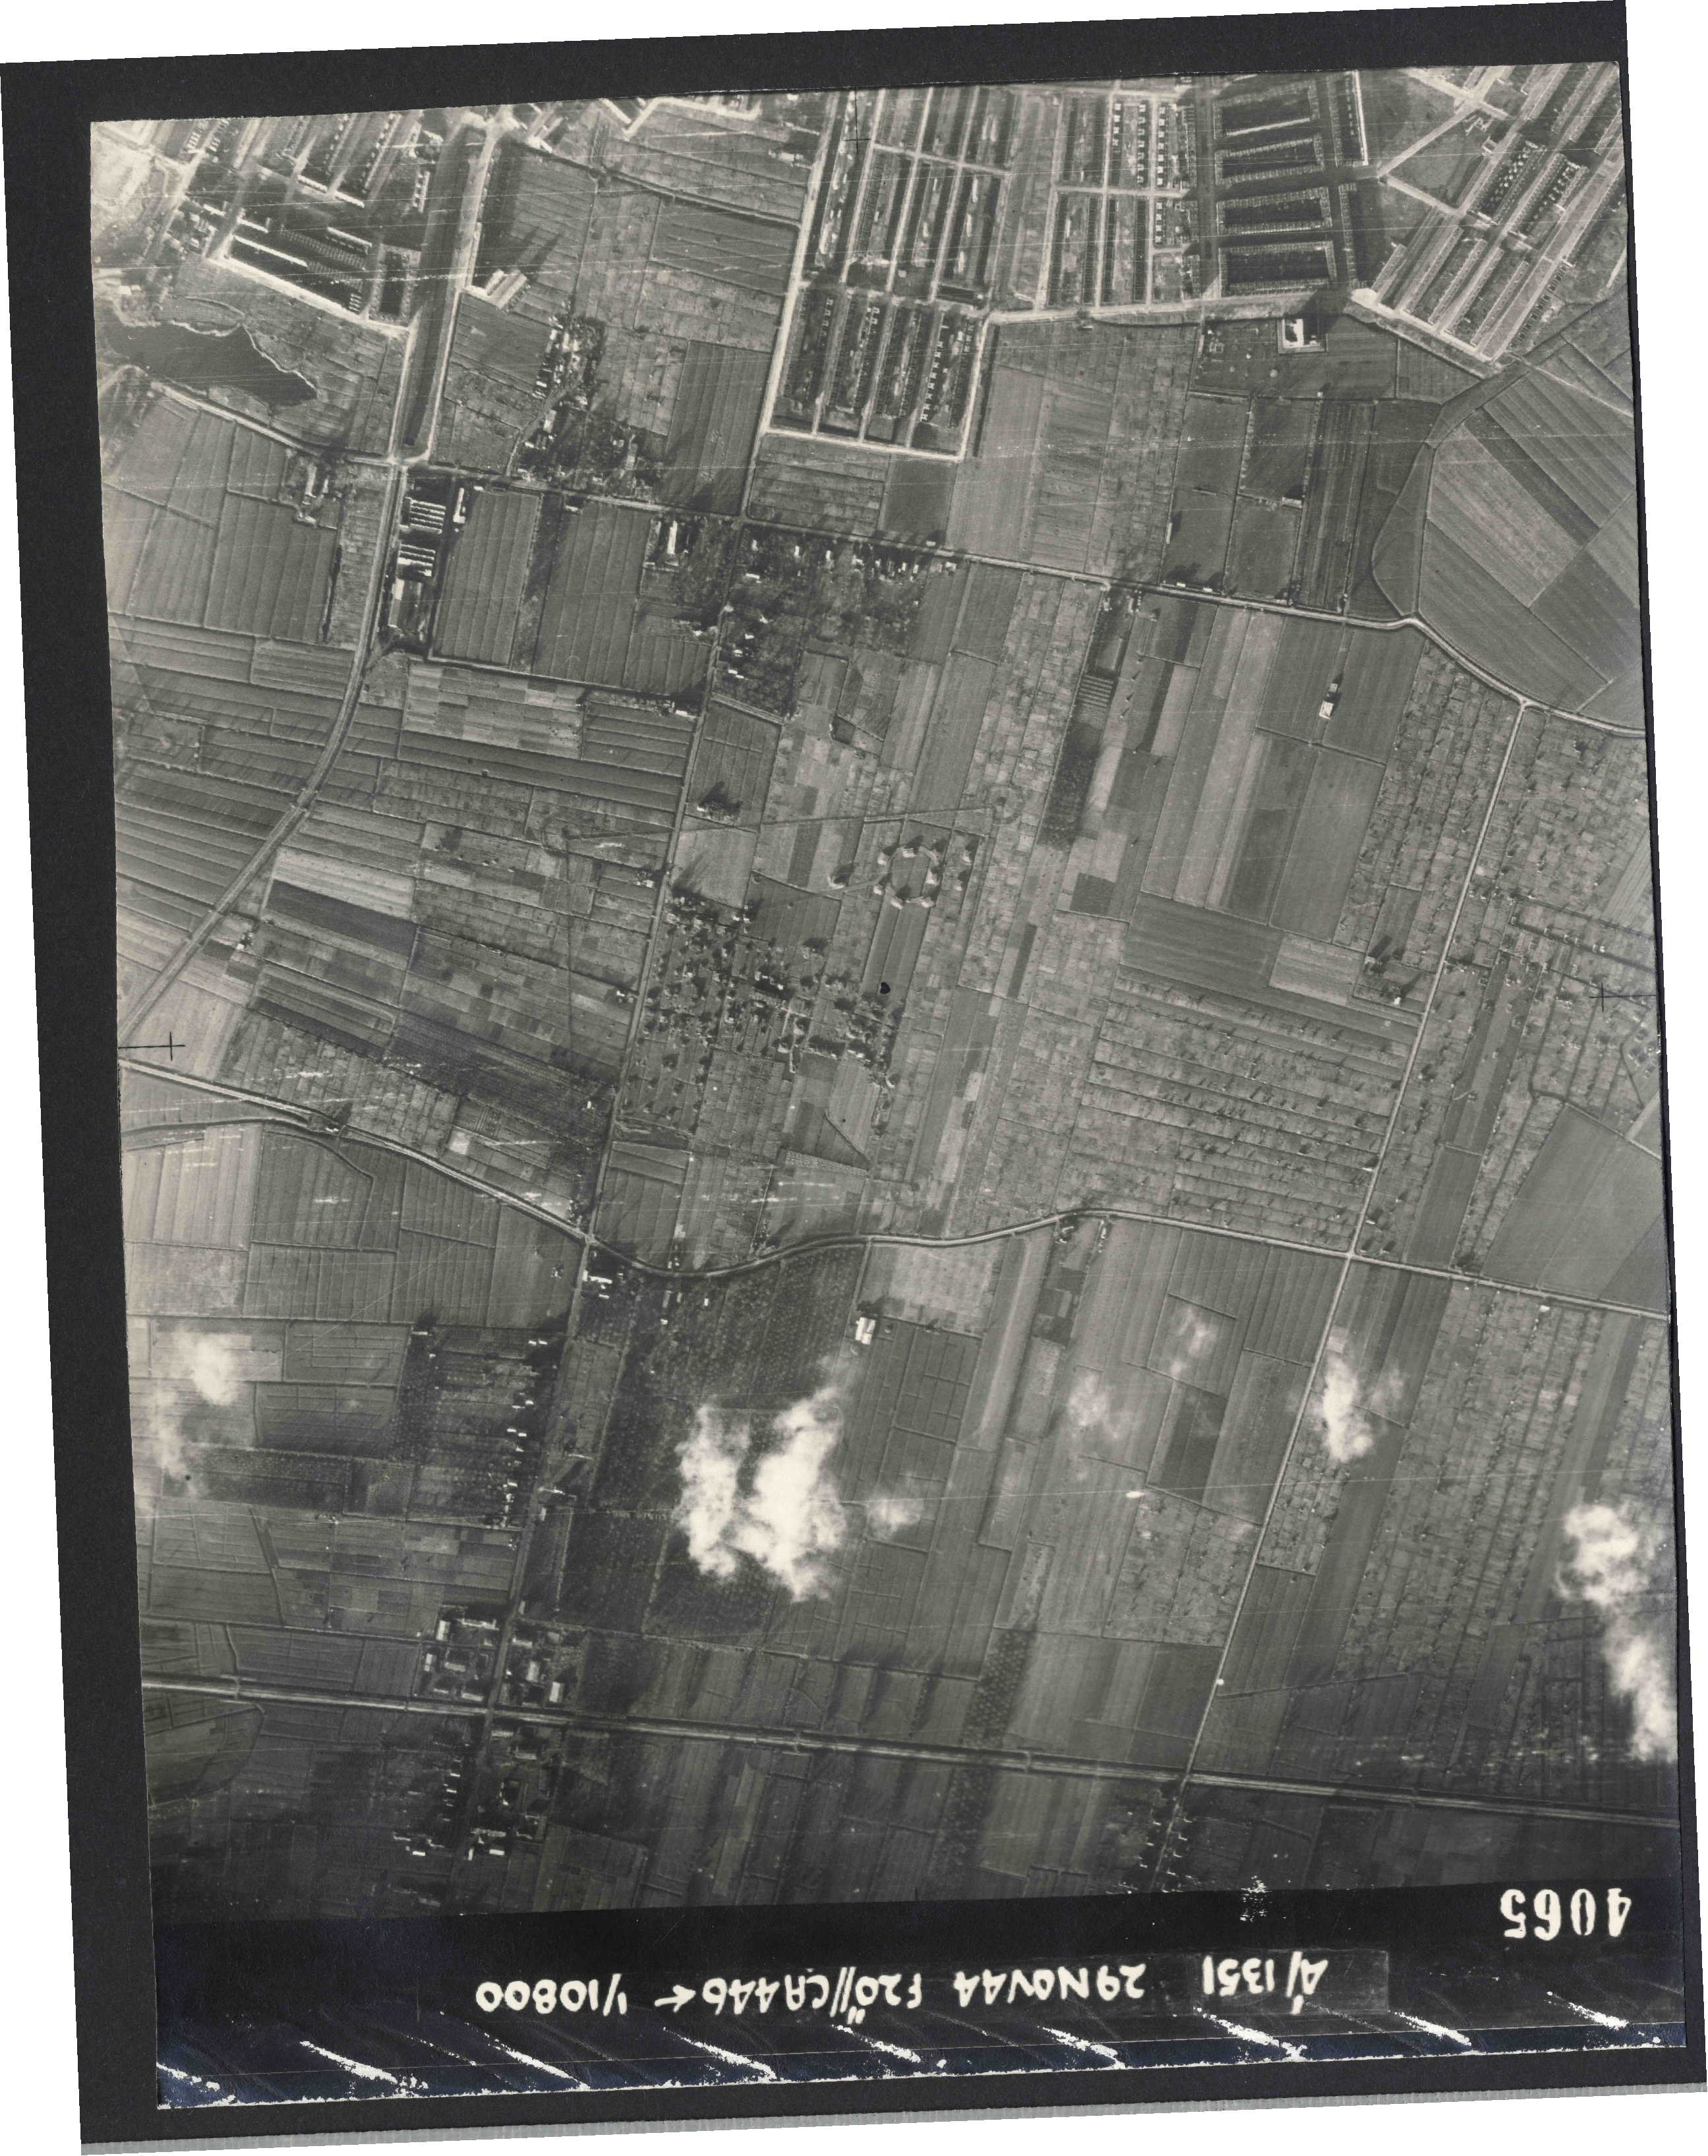 Collection RAF aerial photos 1940-1945 - flight 045, run 06, photo 4065